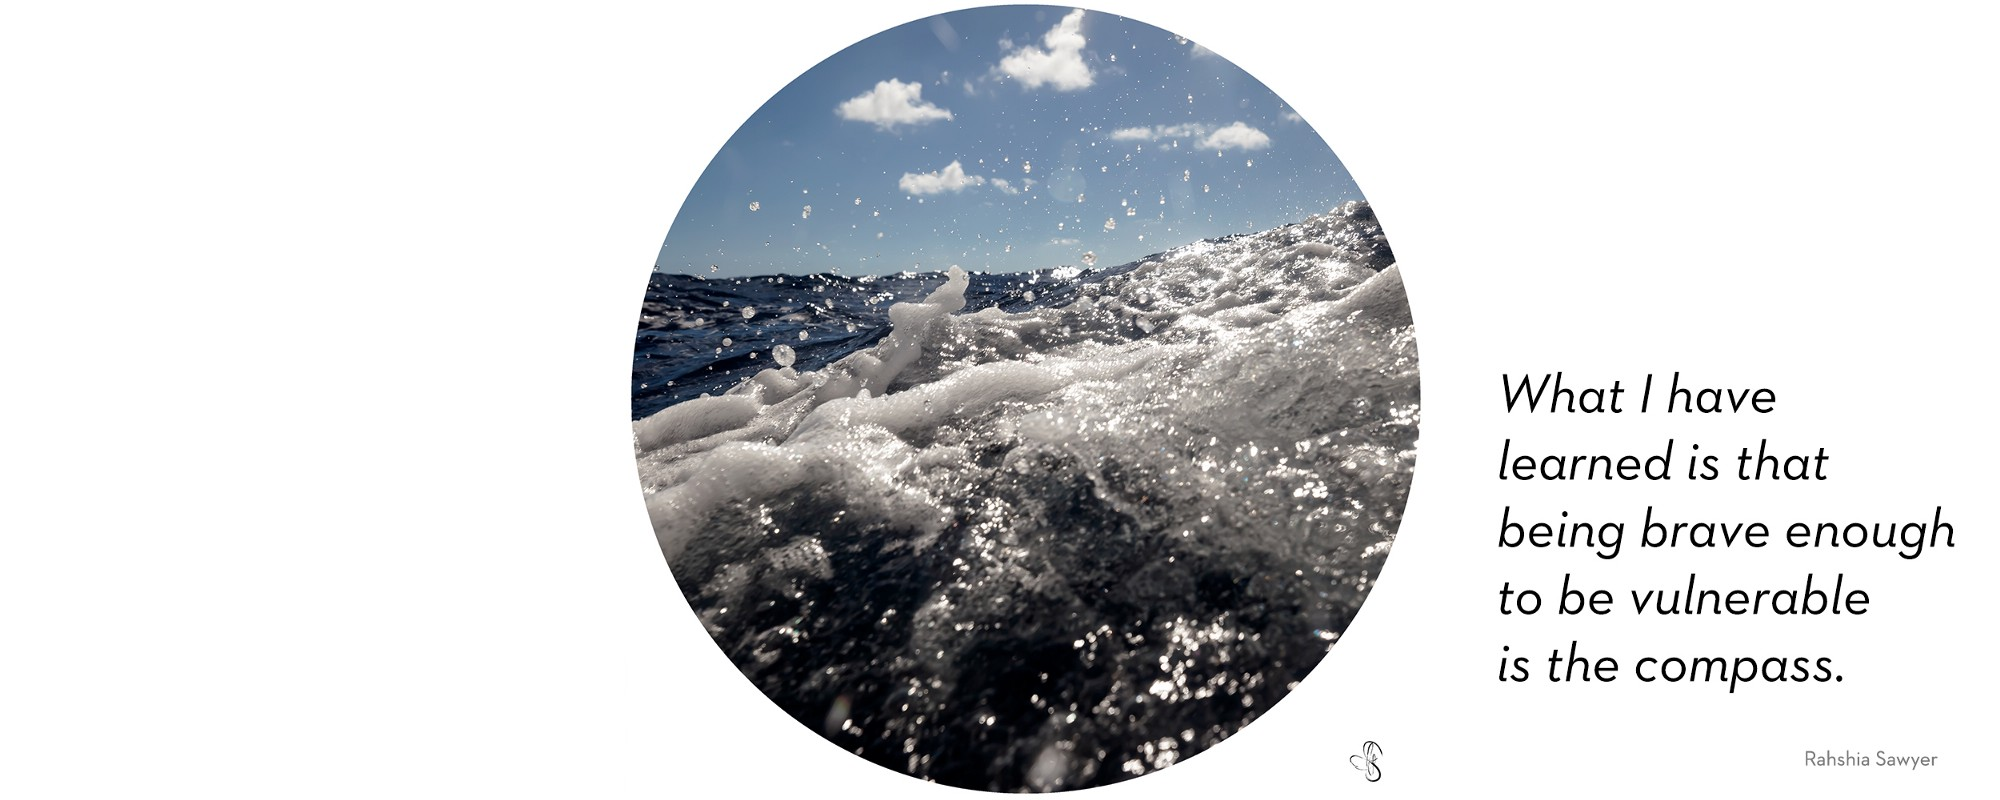 """Photograph of a wave with white foam peaks. """"What I have learned is that being brave enough to be vulnerable is the compass."""""""